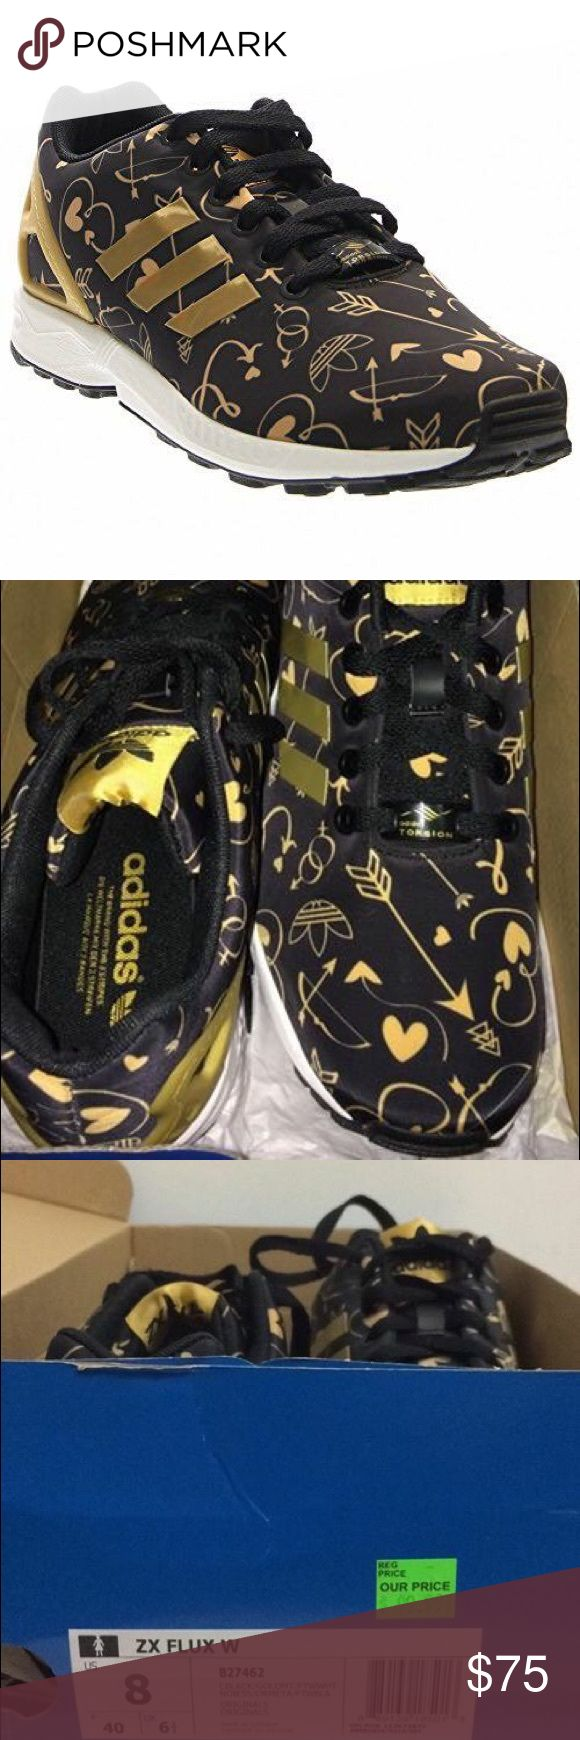 New in box Women's Adidas ZX Flux black/gold, sz 8 Re-posh I love these but I never wore them. Adorable black and metallic gold details. Size 8. ZX Flux. Rare/ hard to find anymore. Comes in box. Adidas Shoes Athletic Shoes